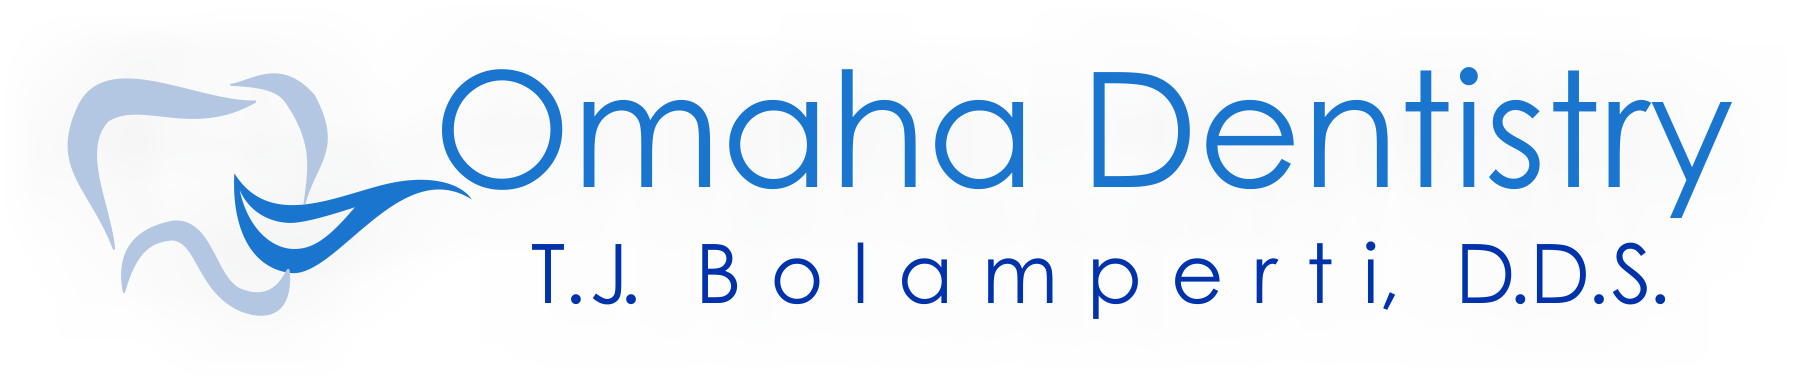 Omaha Dentistry | T.J. (Ted) Bolamperti, D.D.S. | Family Dentist | Cosmetic Dentist | TMJ Dentist | TMD Dentist